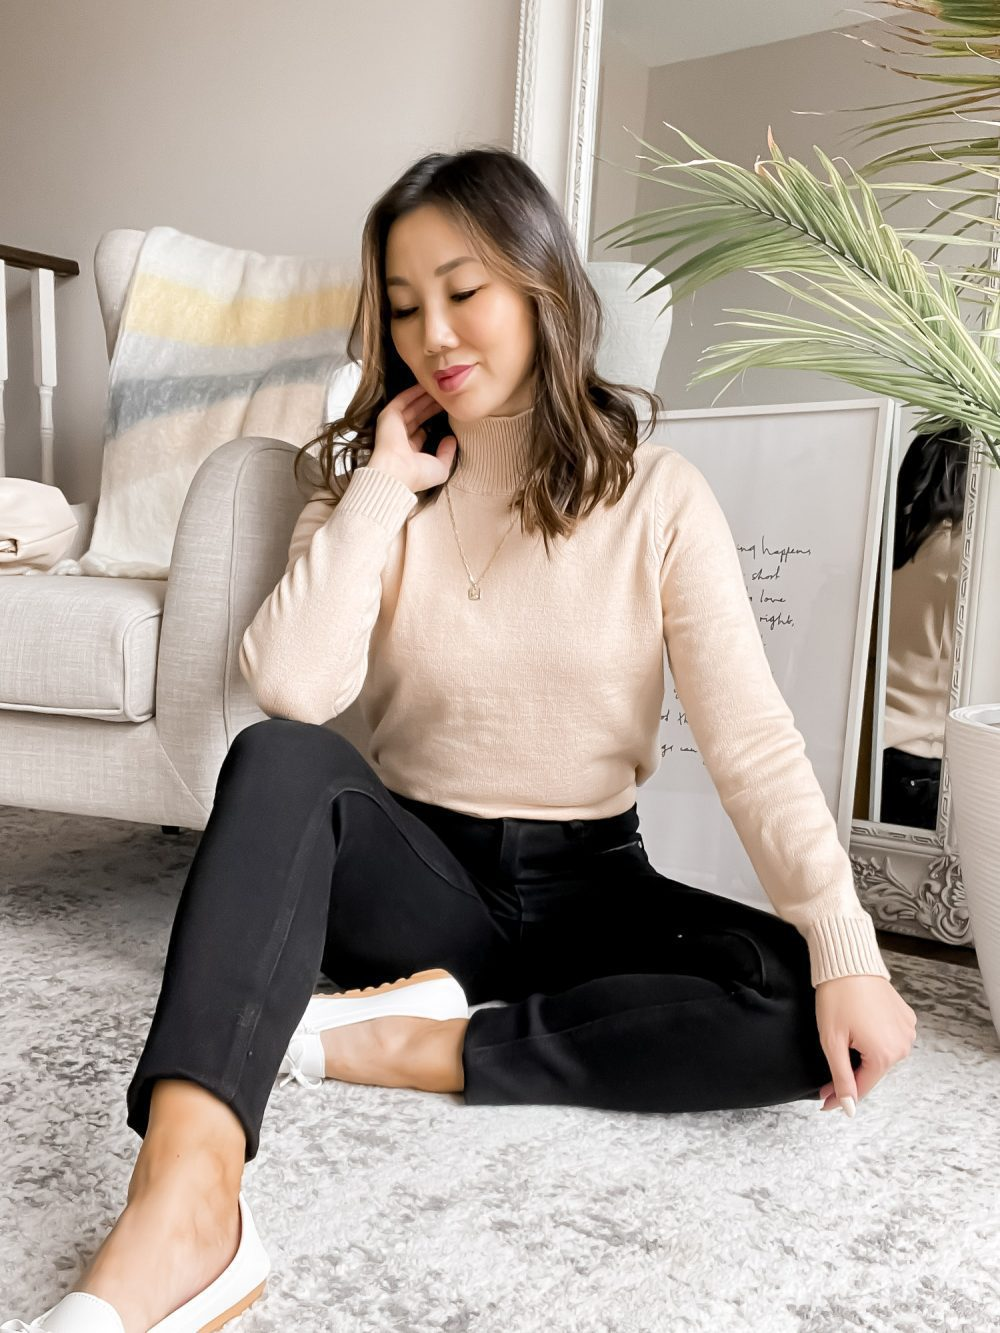 The perfect everyday casual fall outfit with a tan turtleneck sweater, black jeans and loafers. See more fall outfit ideas on yesmissy.com